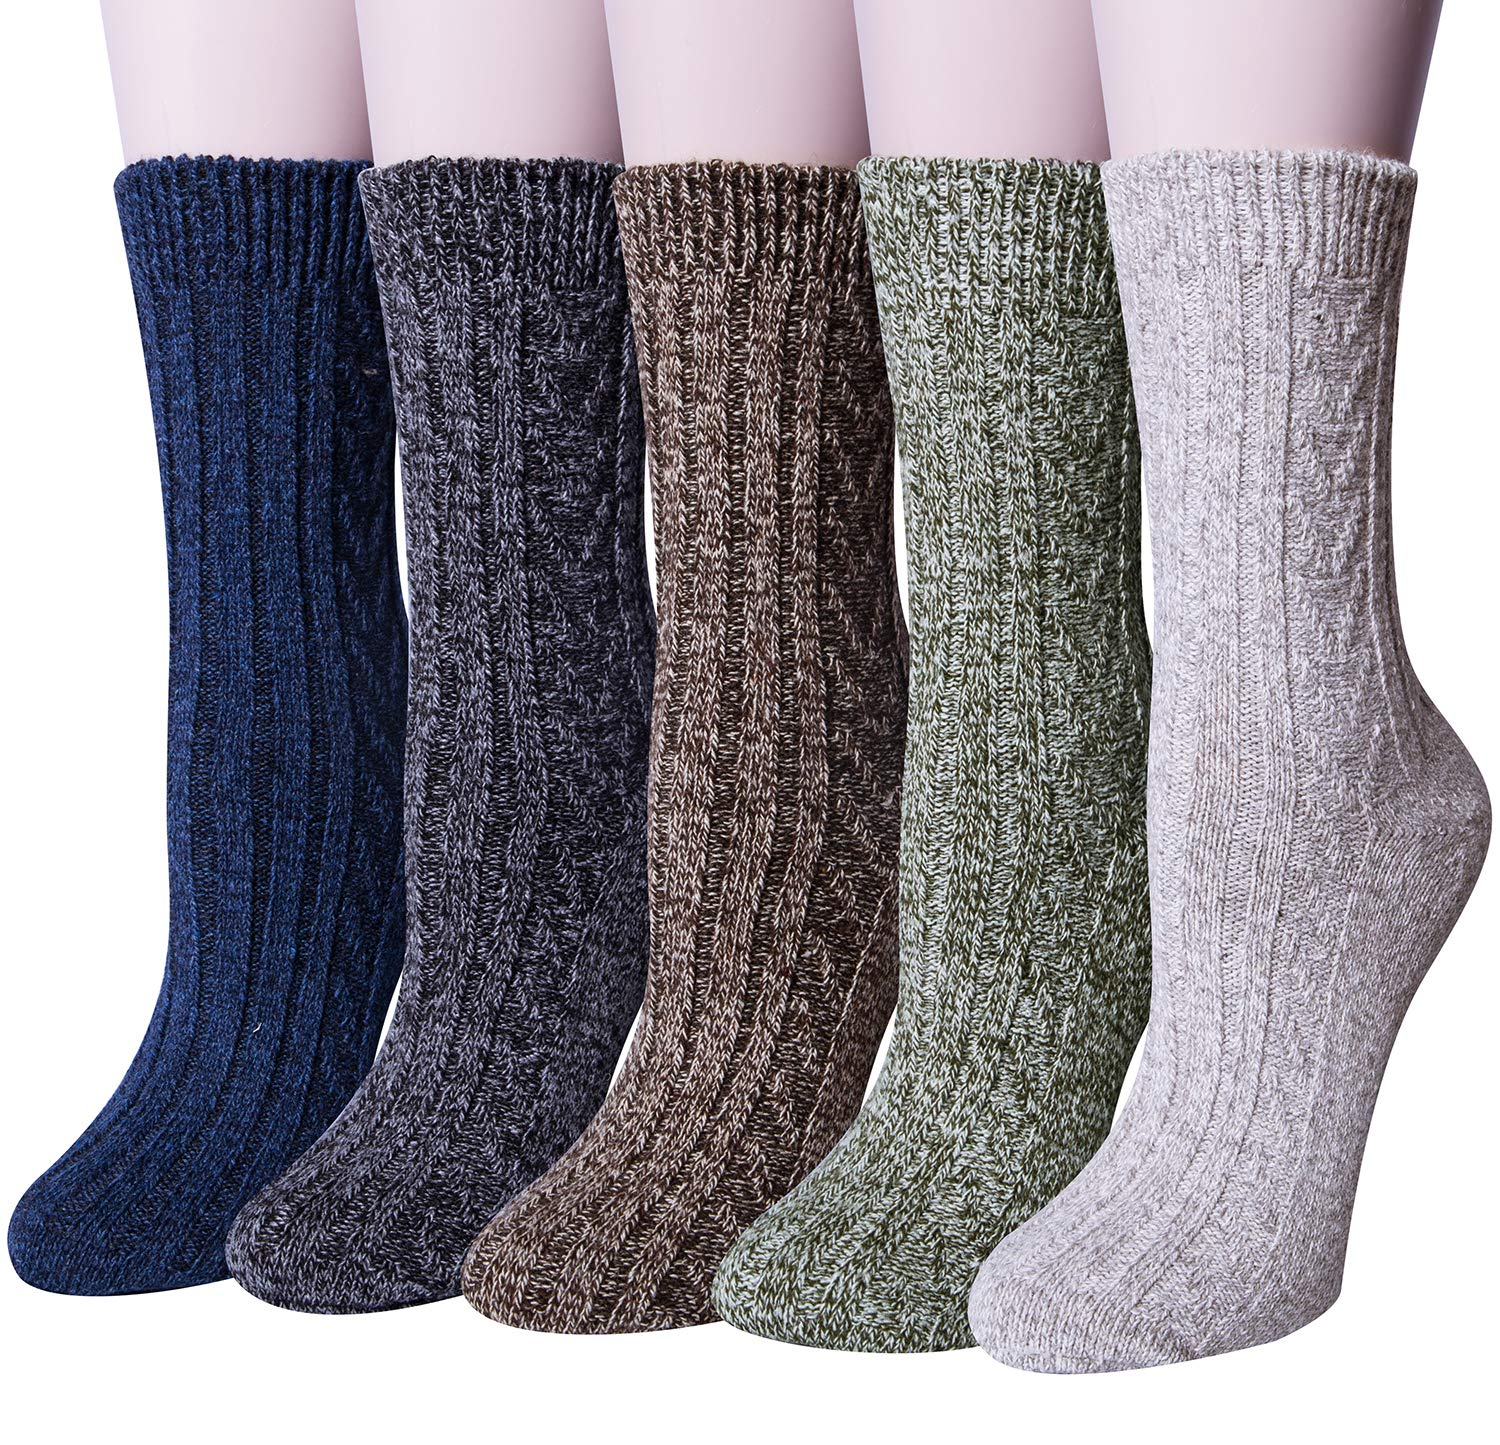 Pack of 5 Womens Winter Socks Warm Thick Knit Wool Soft Vintage